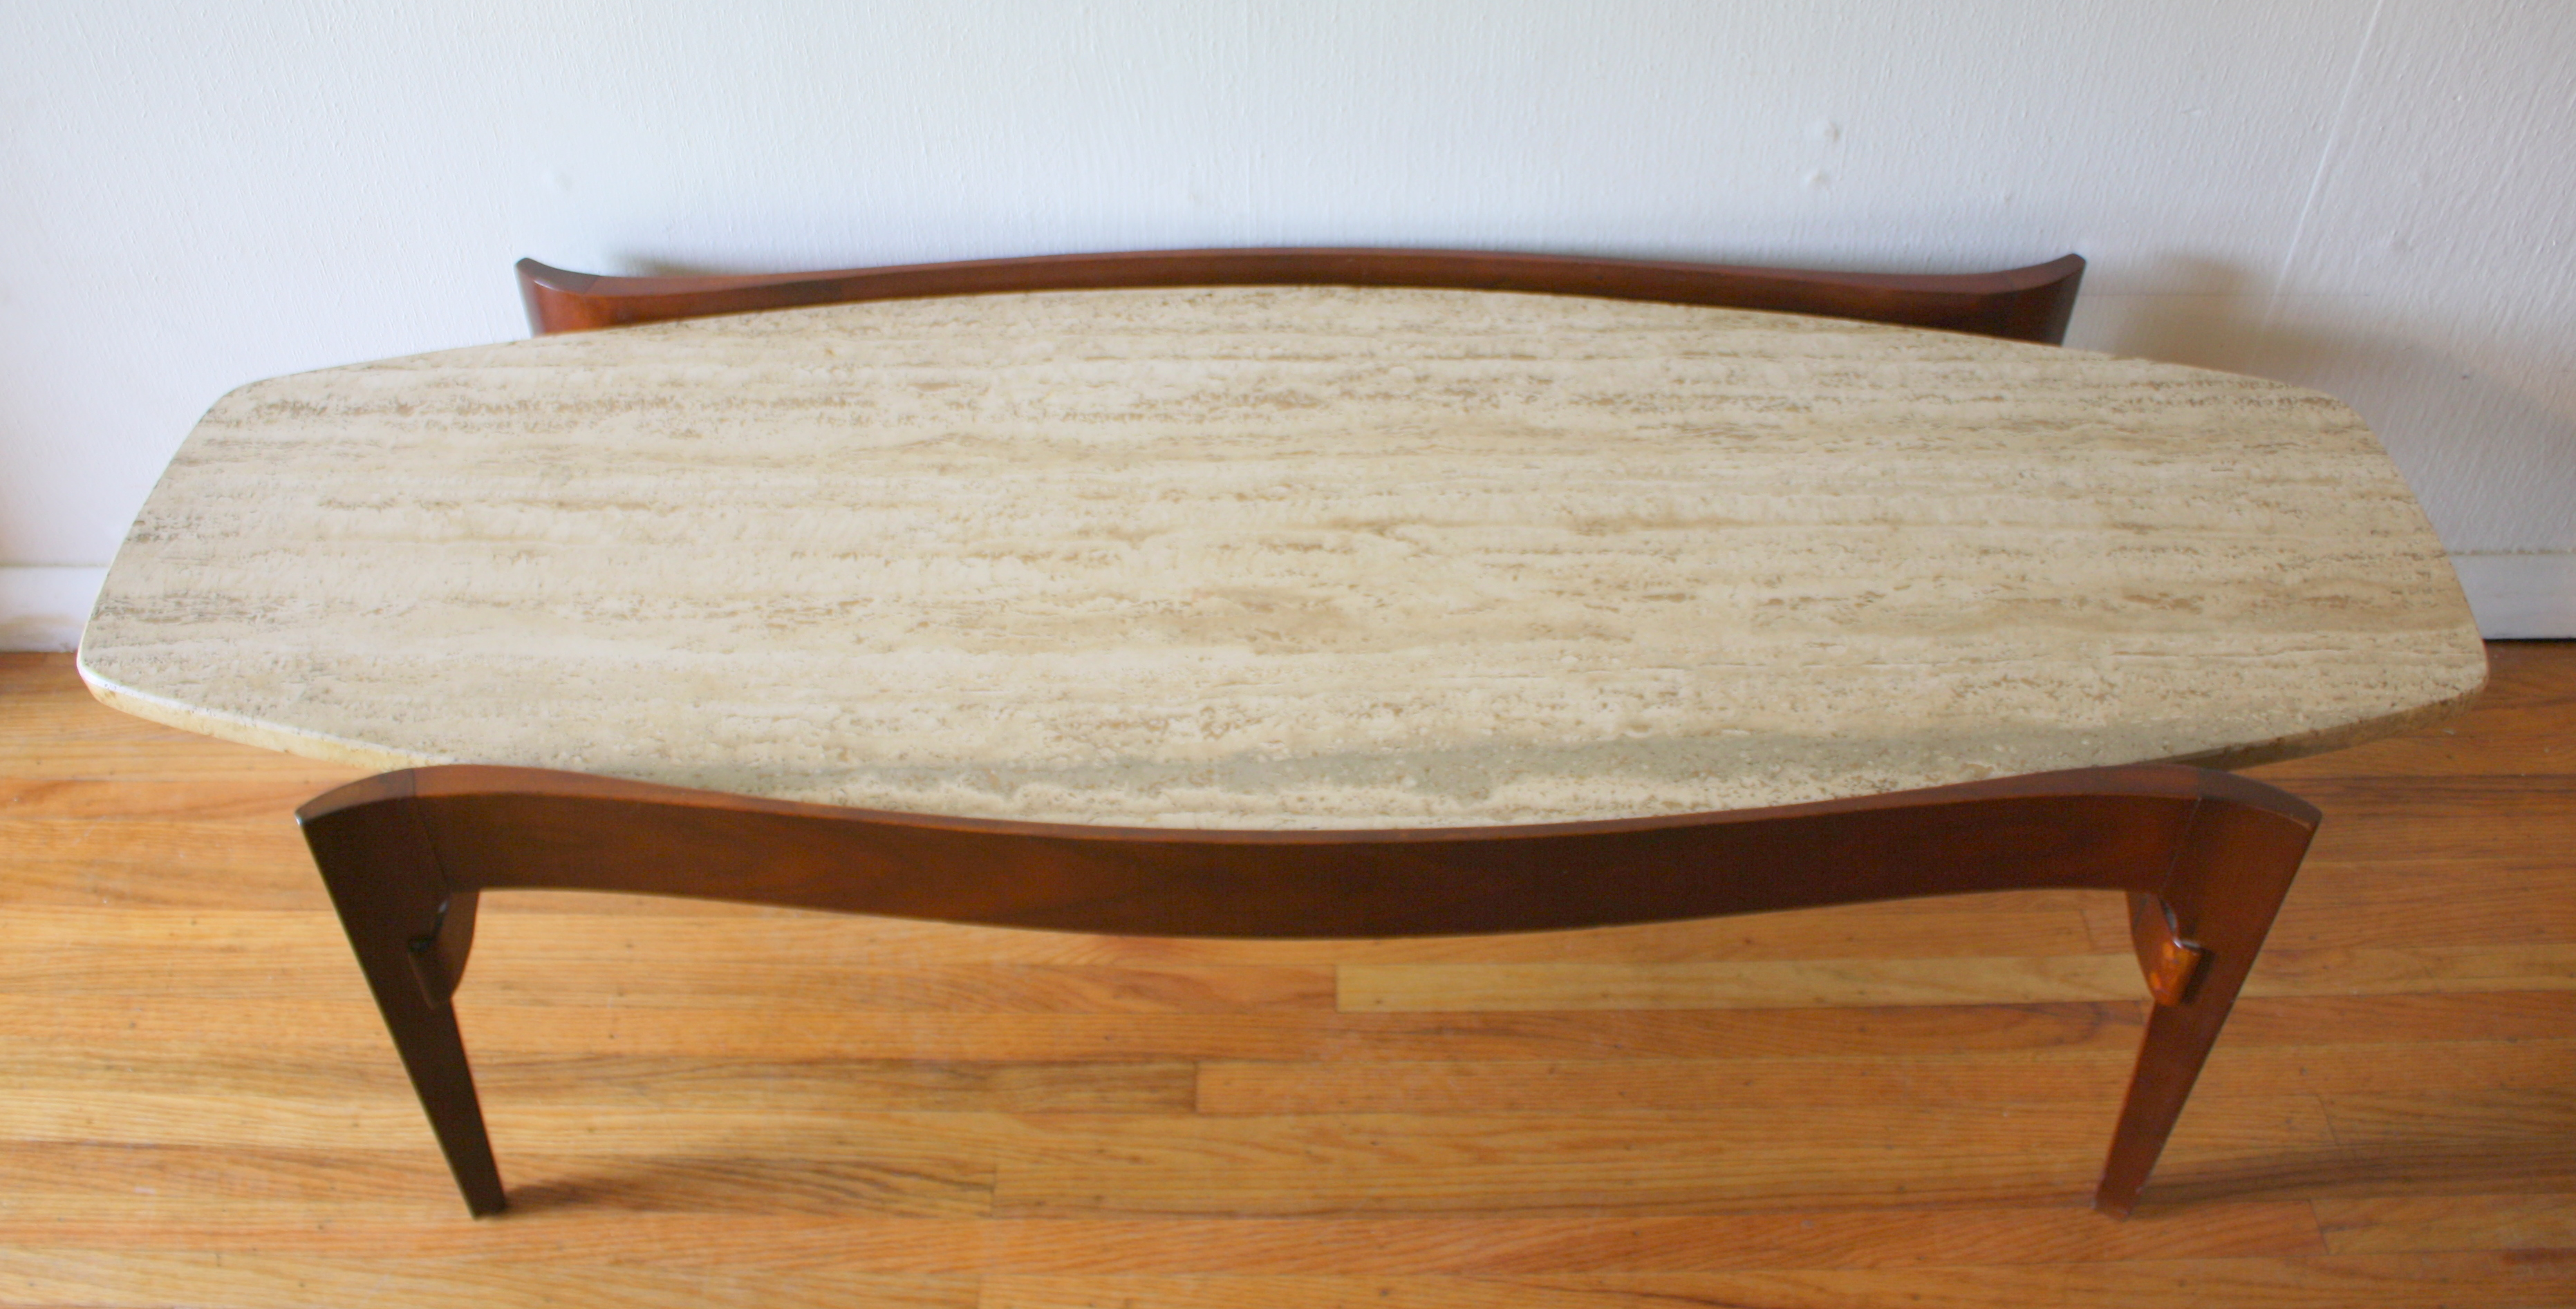 bb4086fdf4c9 Mid Century Modern Surfboard Coffee Table with Floating Marble Top ...